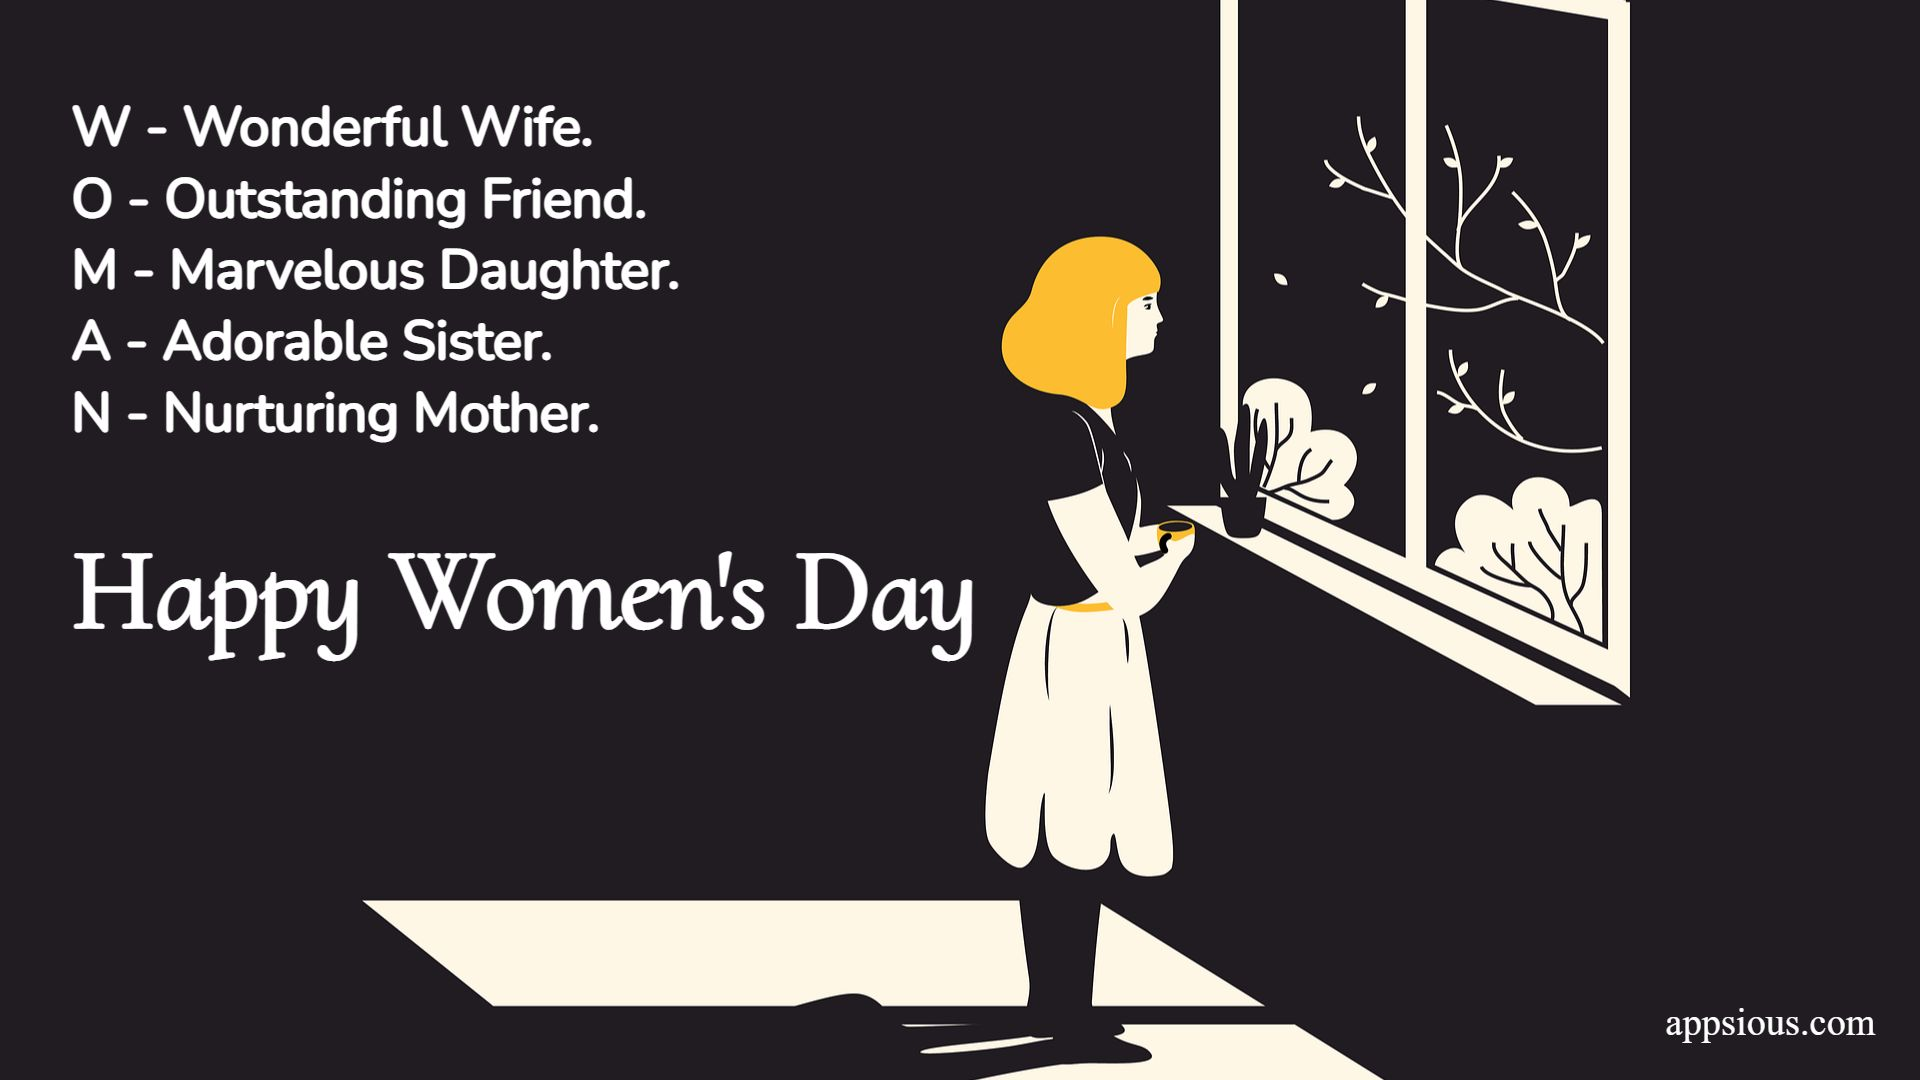 W - Wonderful Wife. O - Outstanding Friend. M - Marvelous Daughter. A - Adorable Sister. N - Nurturing Mother.... Happy Women's Day